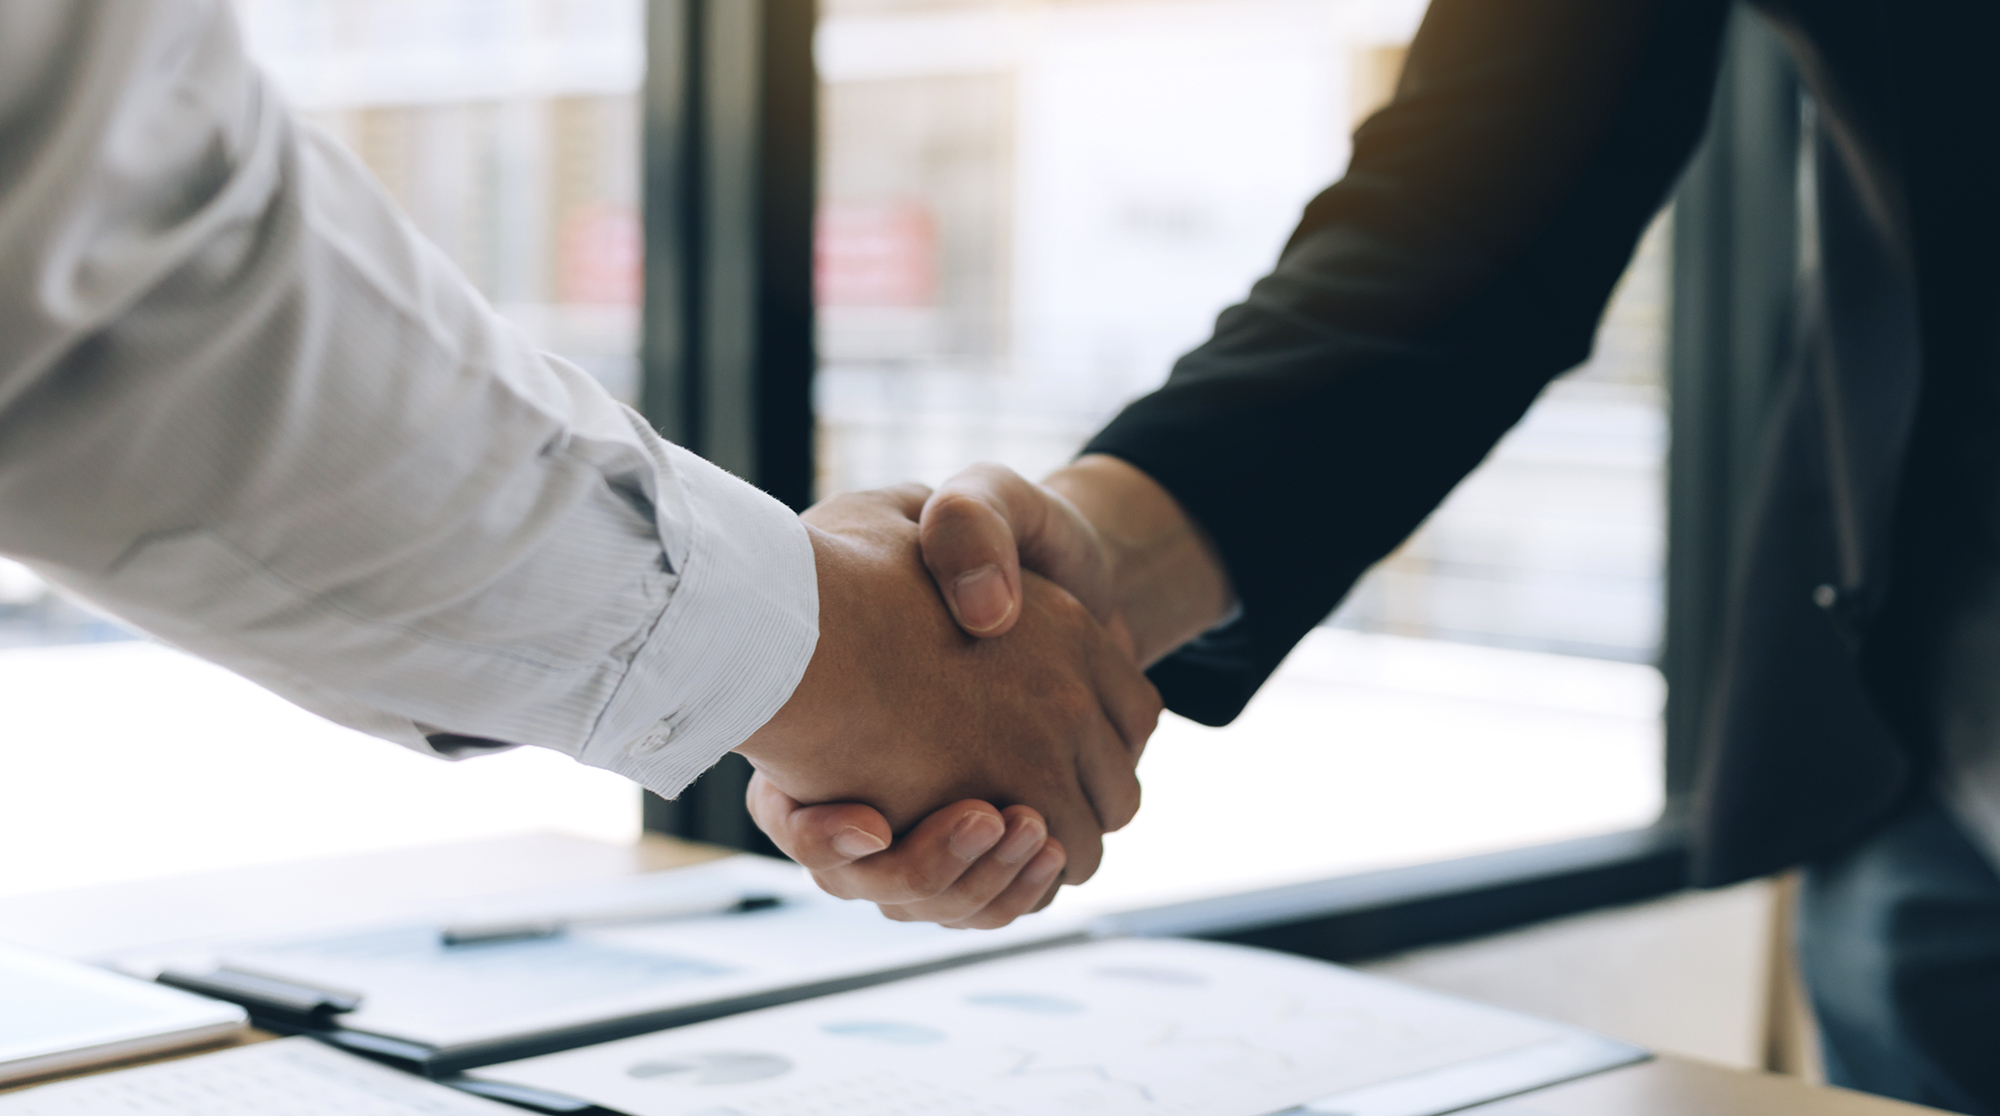 Stock photo of two people shaking hands after a business acquisition has been made.